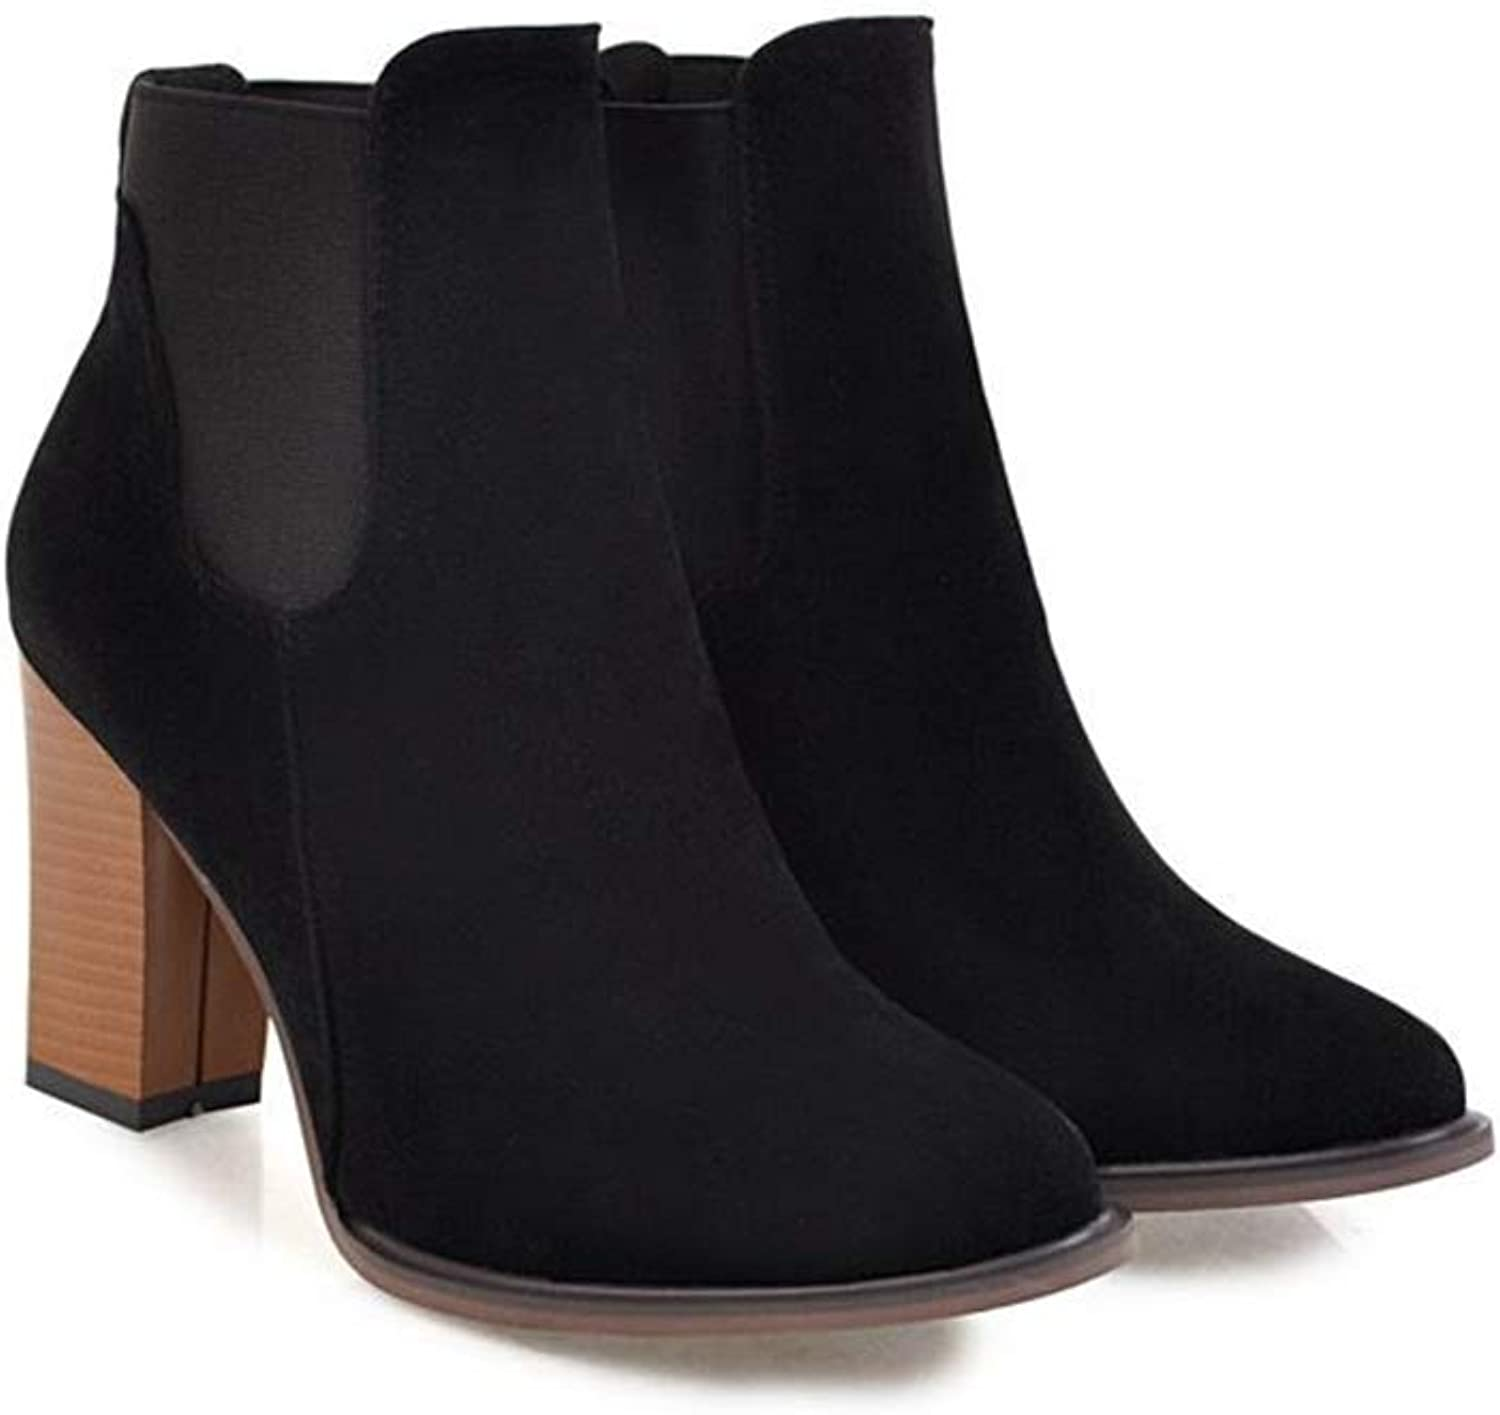 Smart.A Women's Suede Chunky Heel Ankle Boot